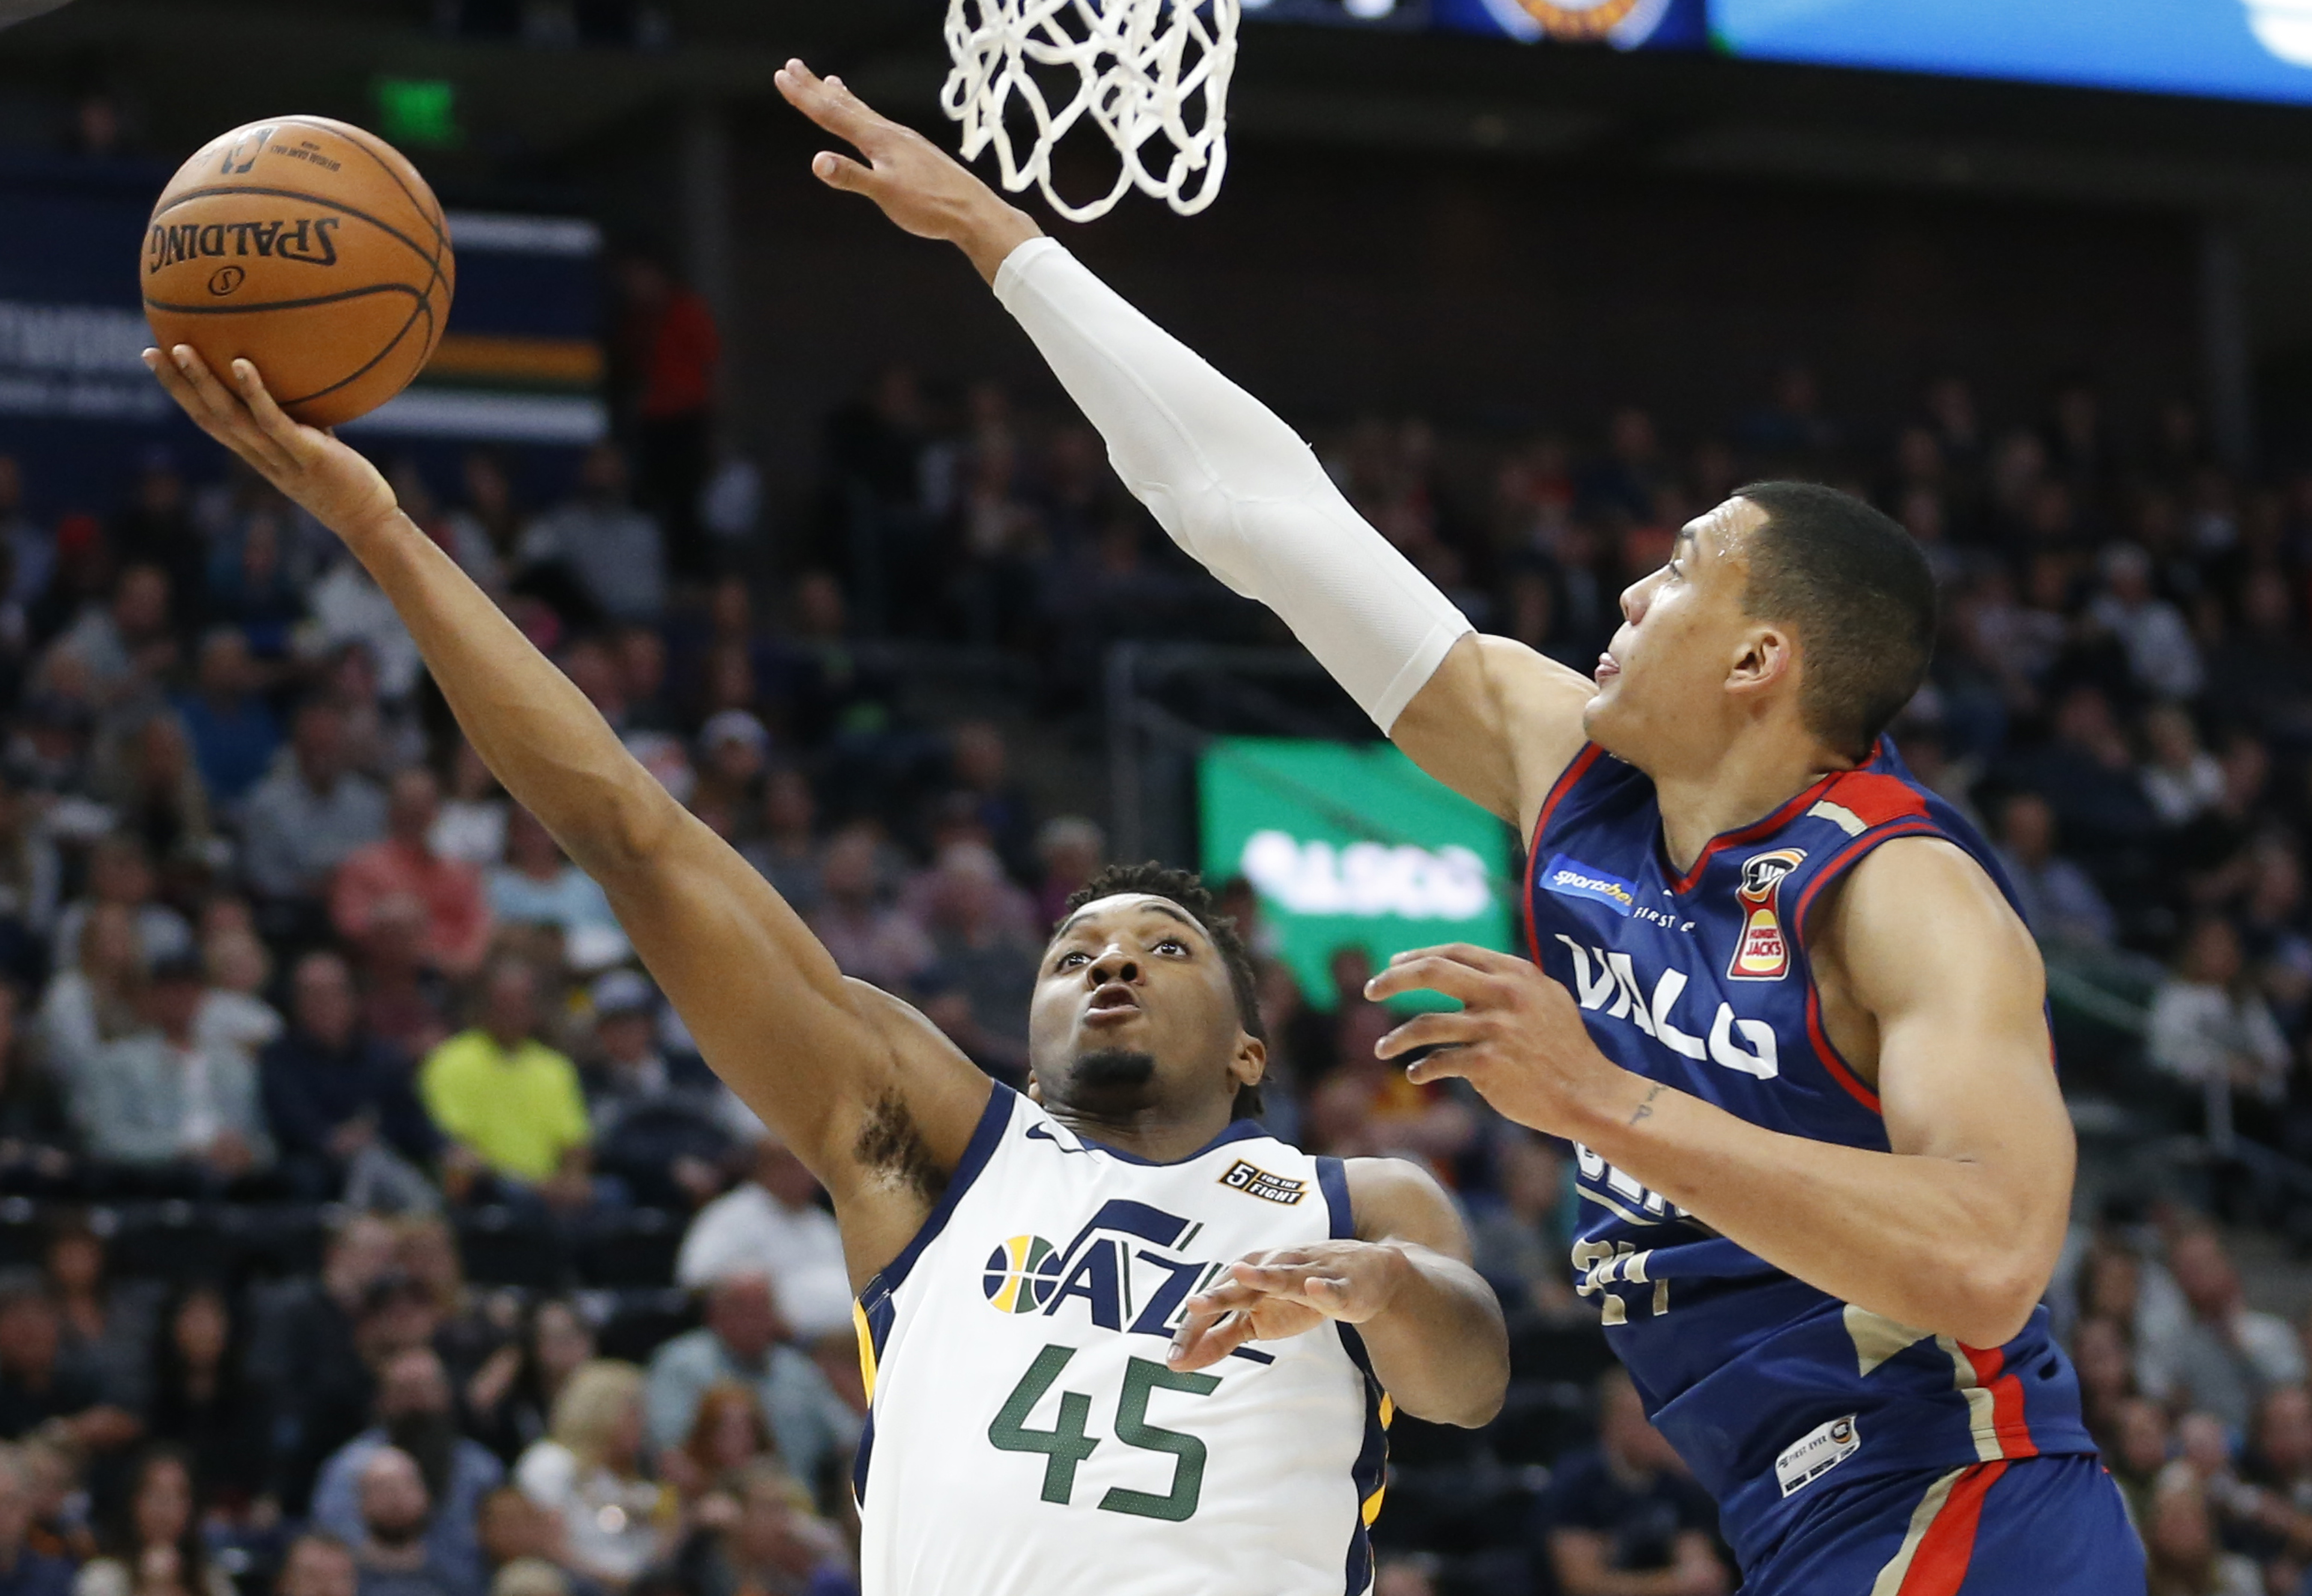 Utah Jazz guard Donovan Mitchell (45) lays the ball up as Adelaide 36ers forward Jake Wiley, right, defends during the first half during an NBA exhibition basketball game Friday, Oct. 5, 2018, in Salt Lake City. (AP Photo/Rick Bowmer)